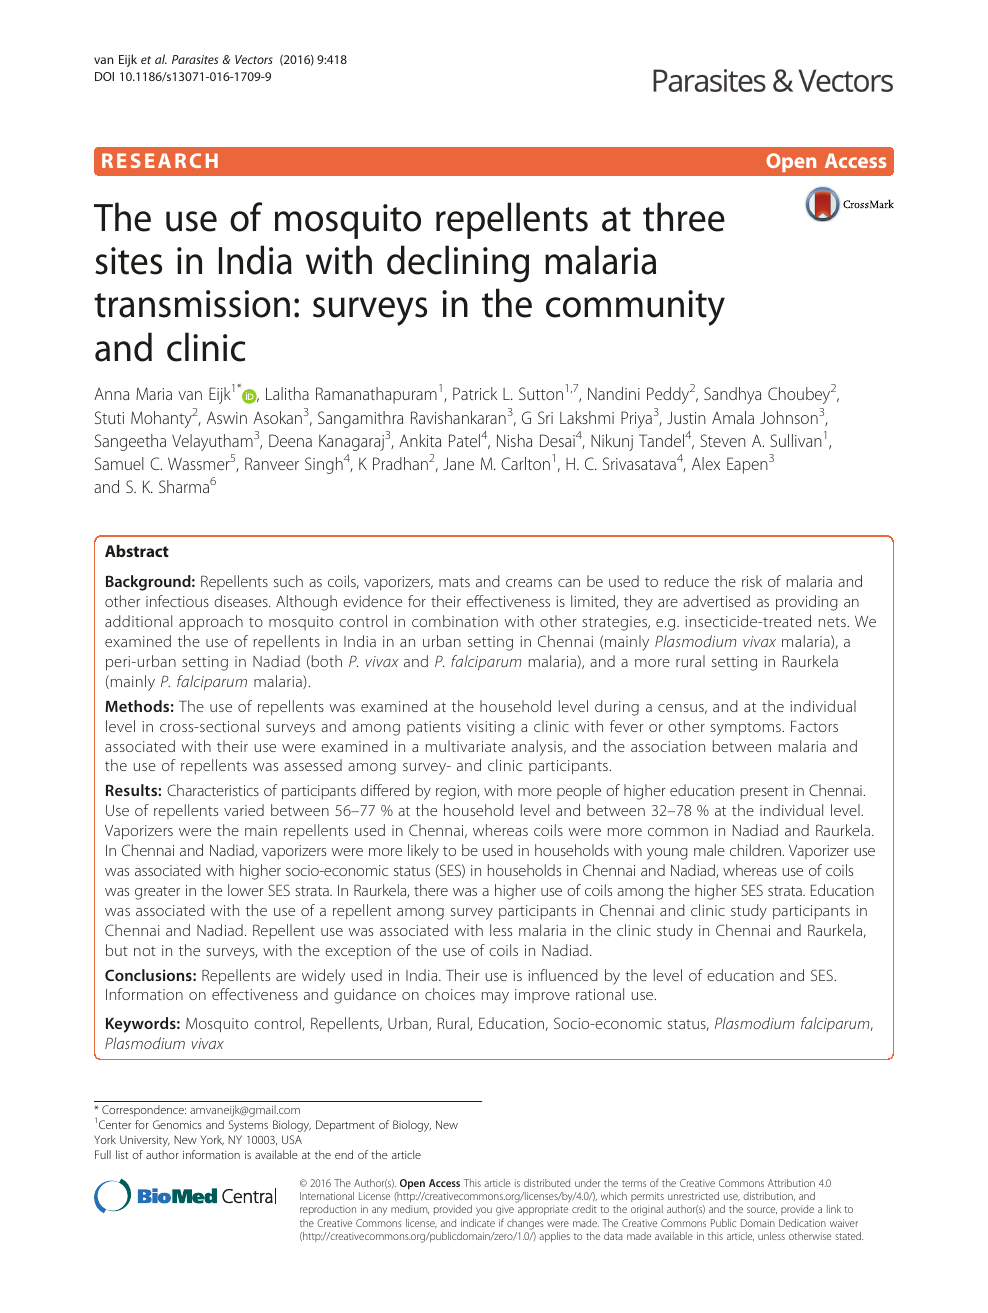 The use of mosquito repellents at three sites in India with